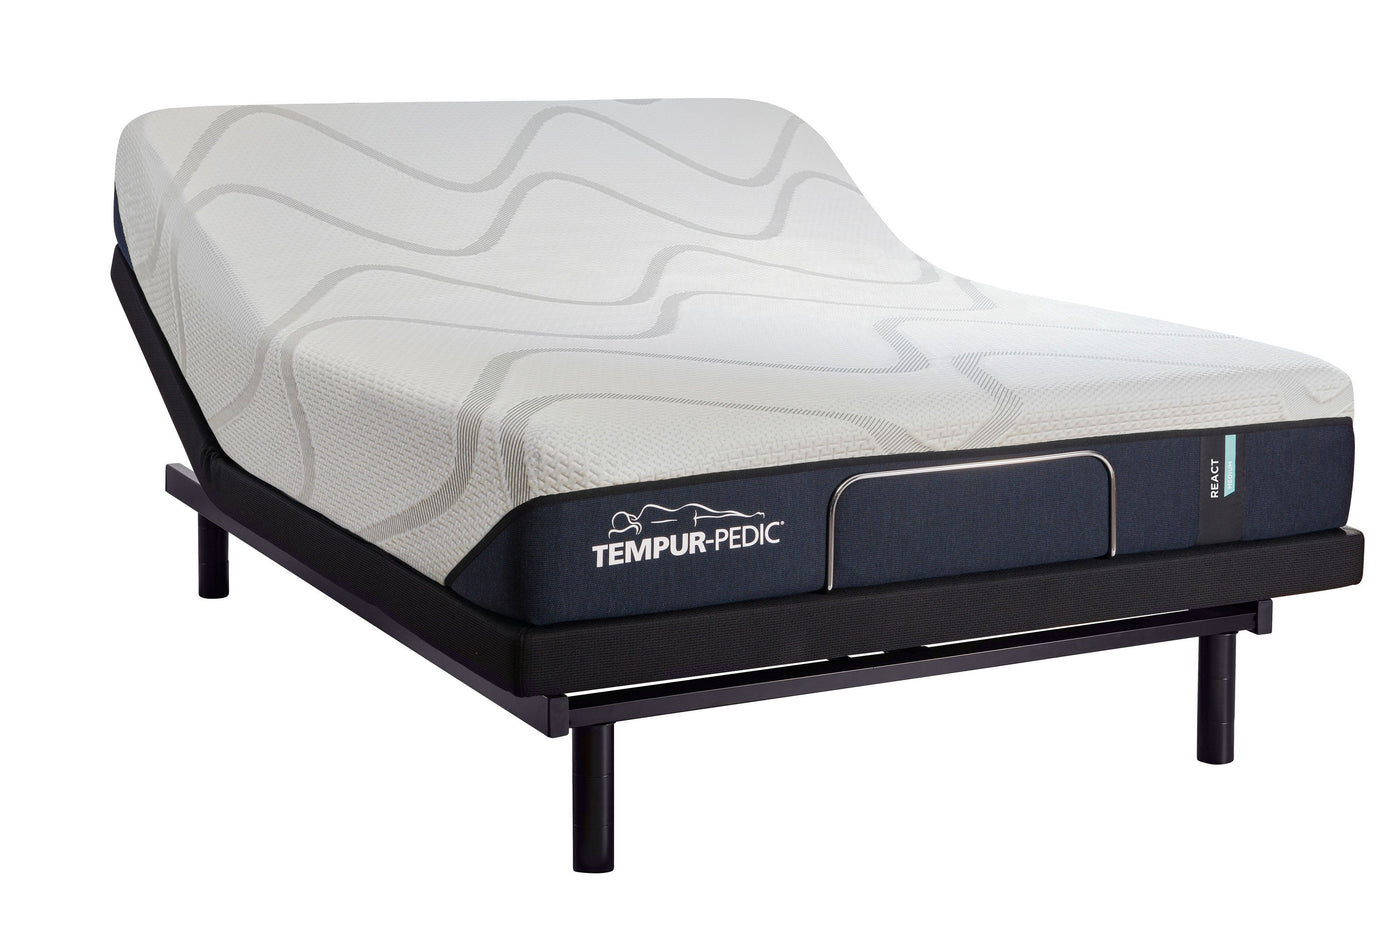 newest 9c9fa a599b Tempur-Pedic React Medium Firm King Mattress and Pulse Split Complete  Adjustable Base Set